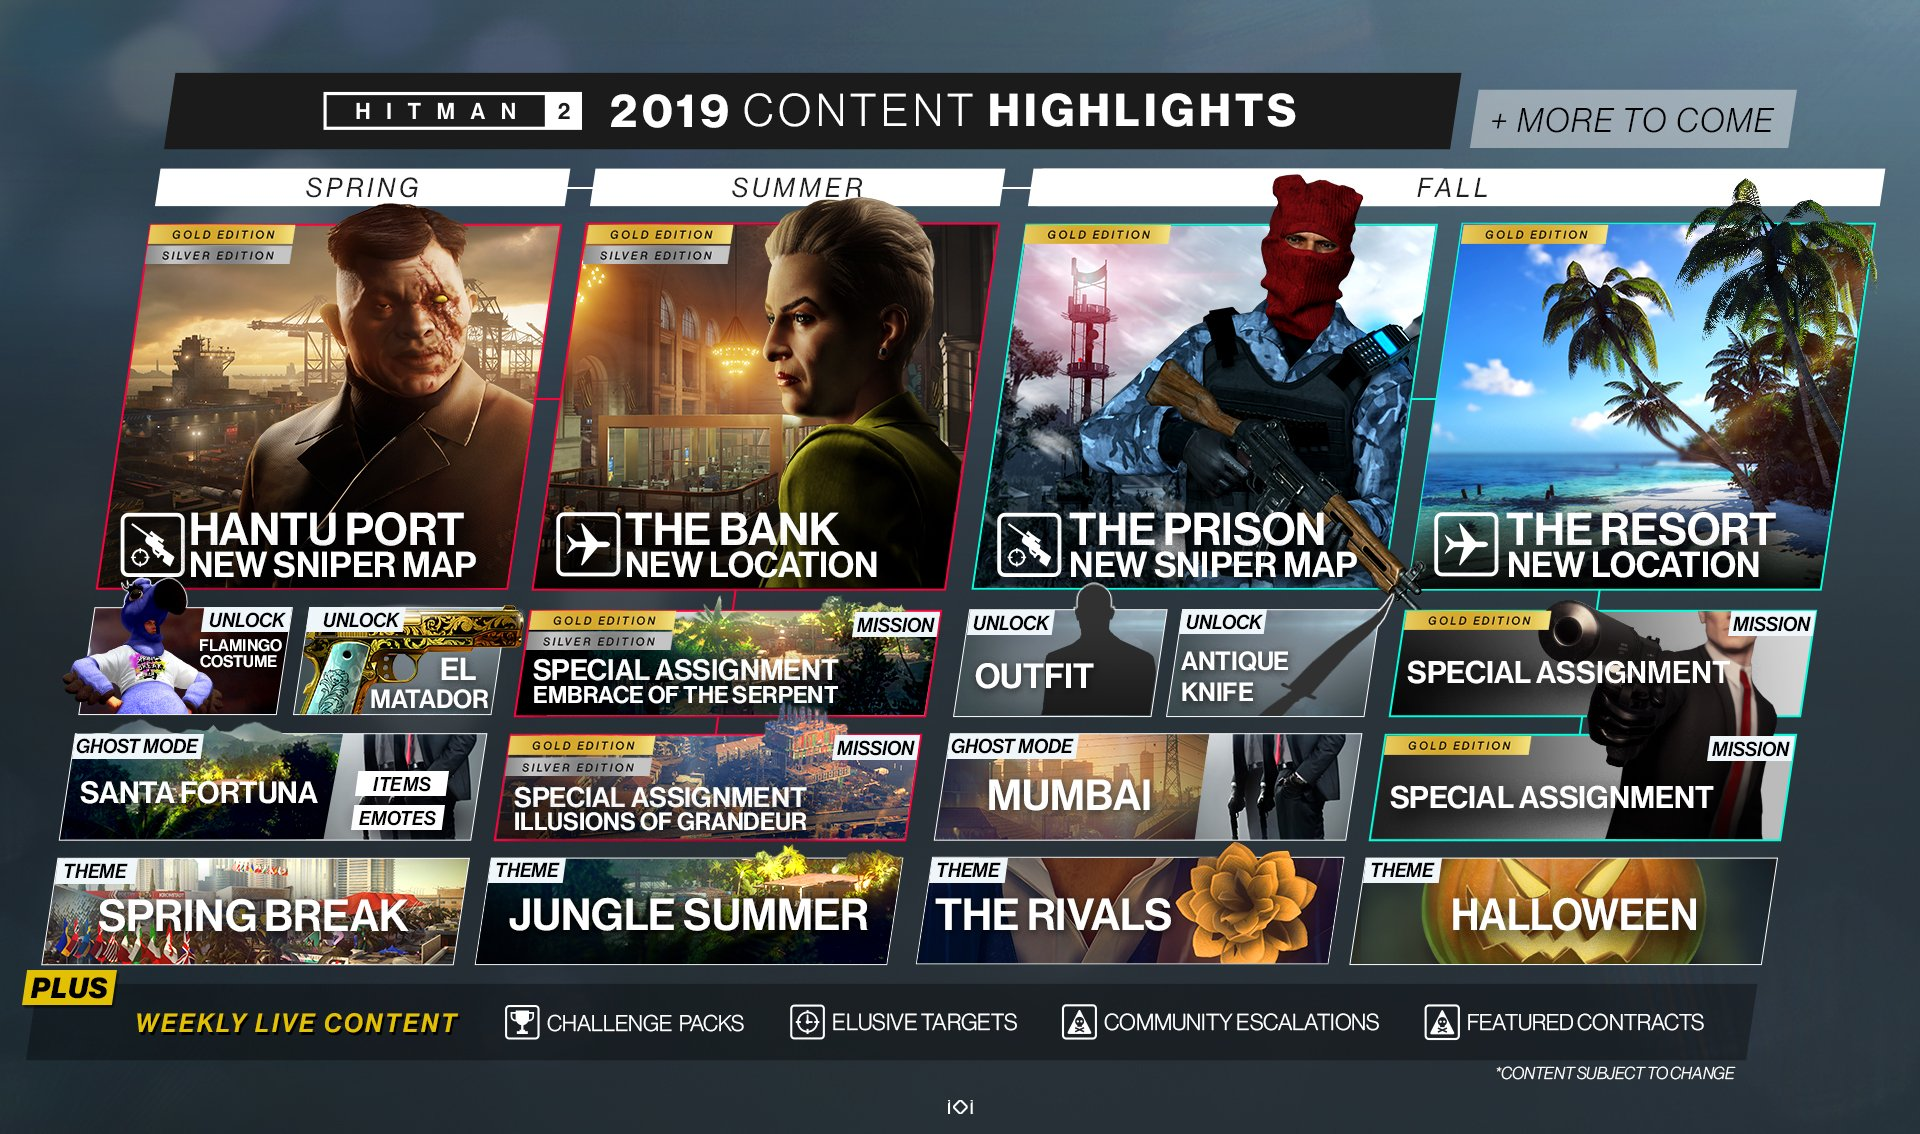 Hitman 2 2019 roadmap